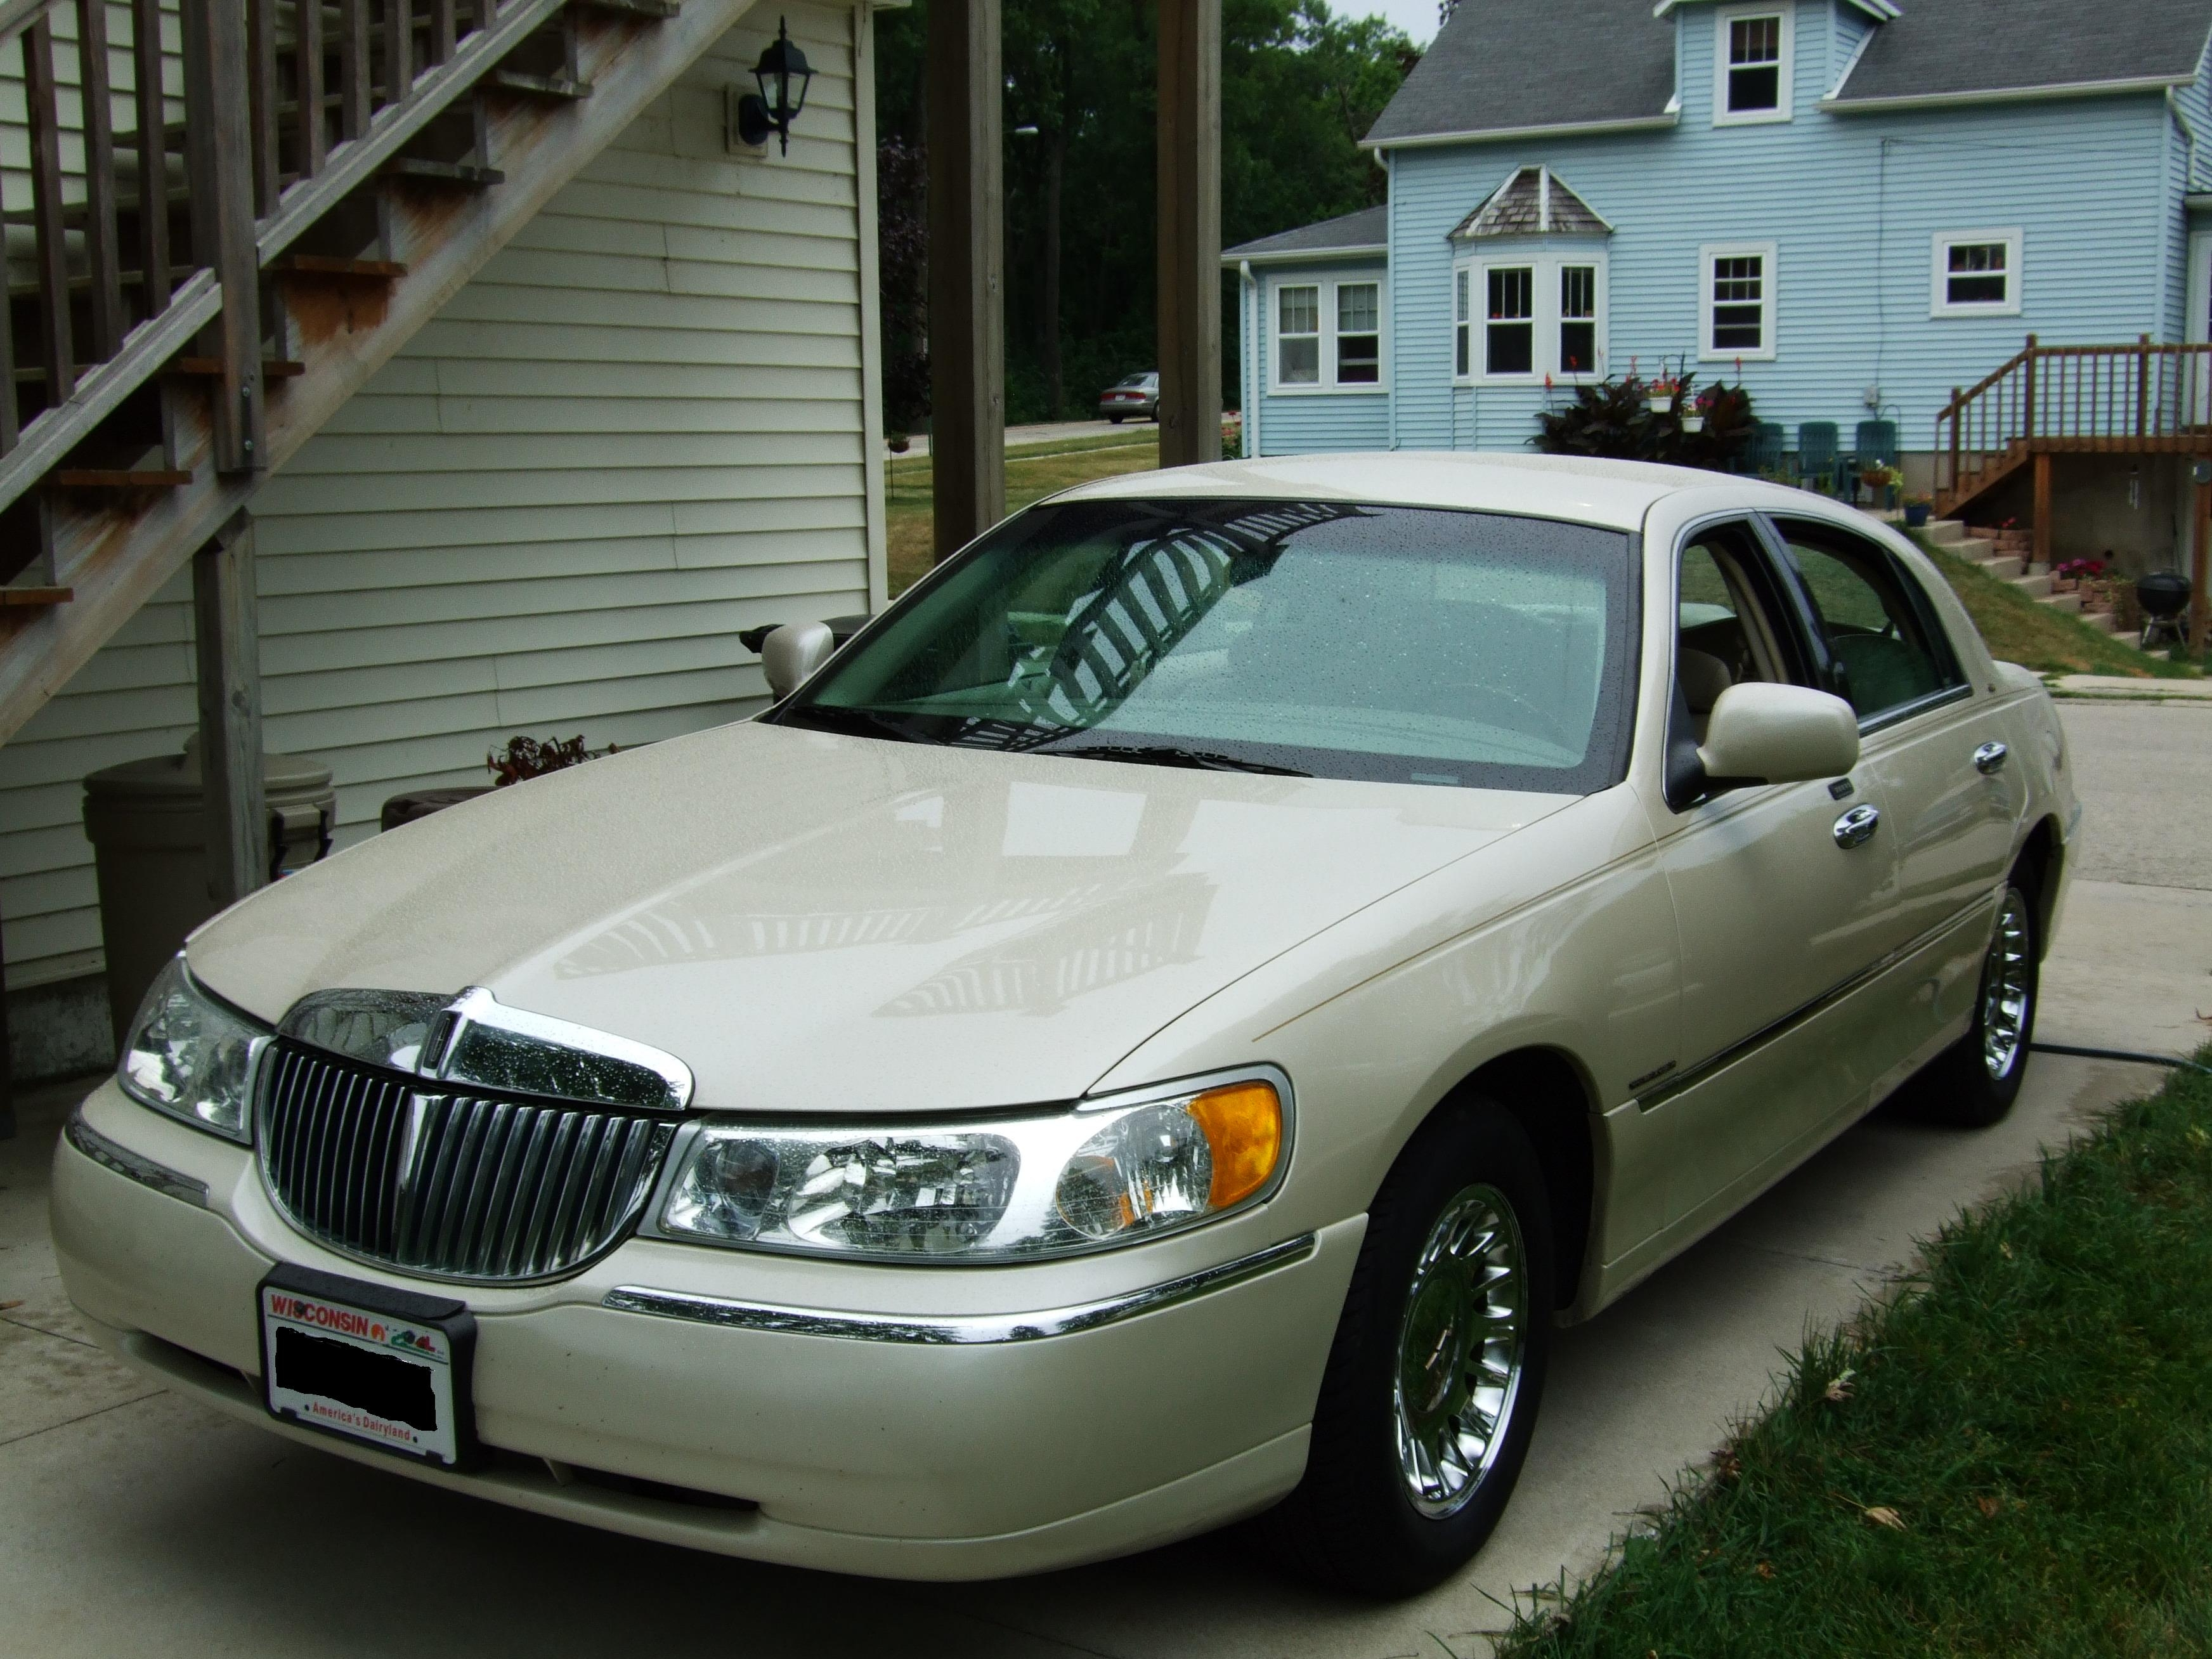 WisconsinCheese's 2002 Lincoln Town Car